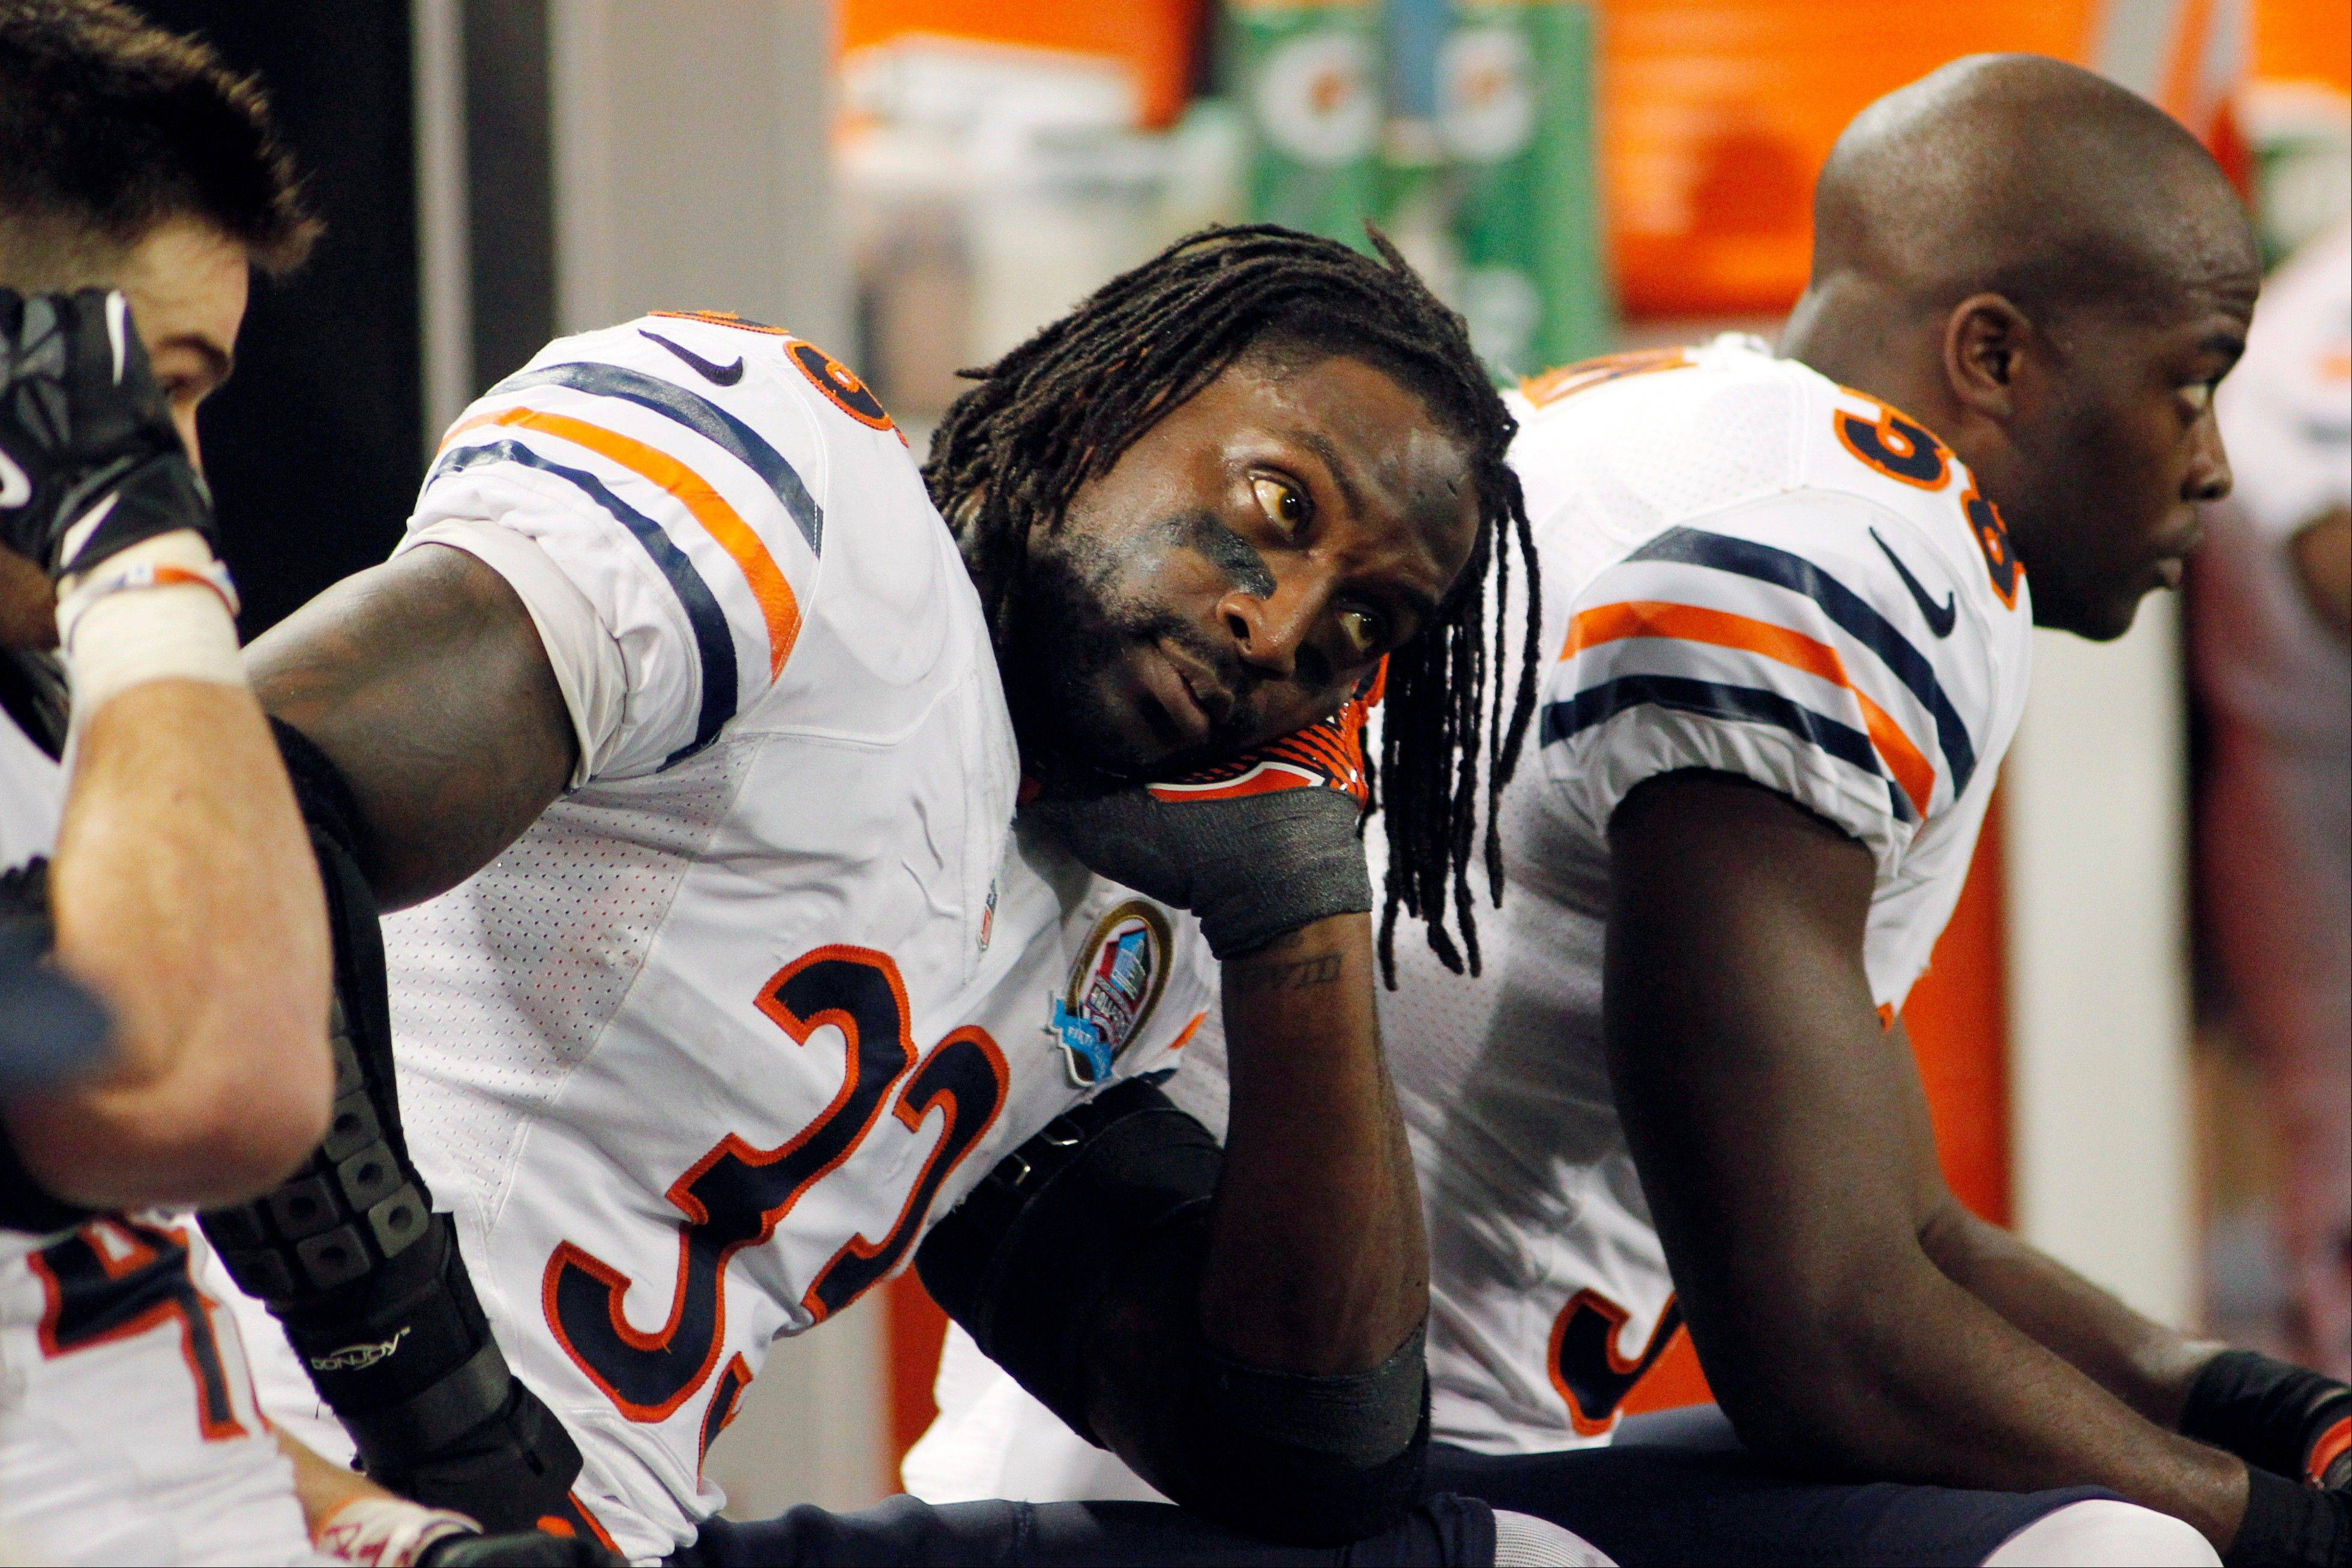 Chicago Bears cornerback Charles Tillman sits on the bench during the second half. The Vikings won 21-14.